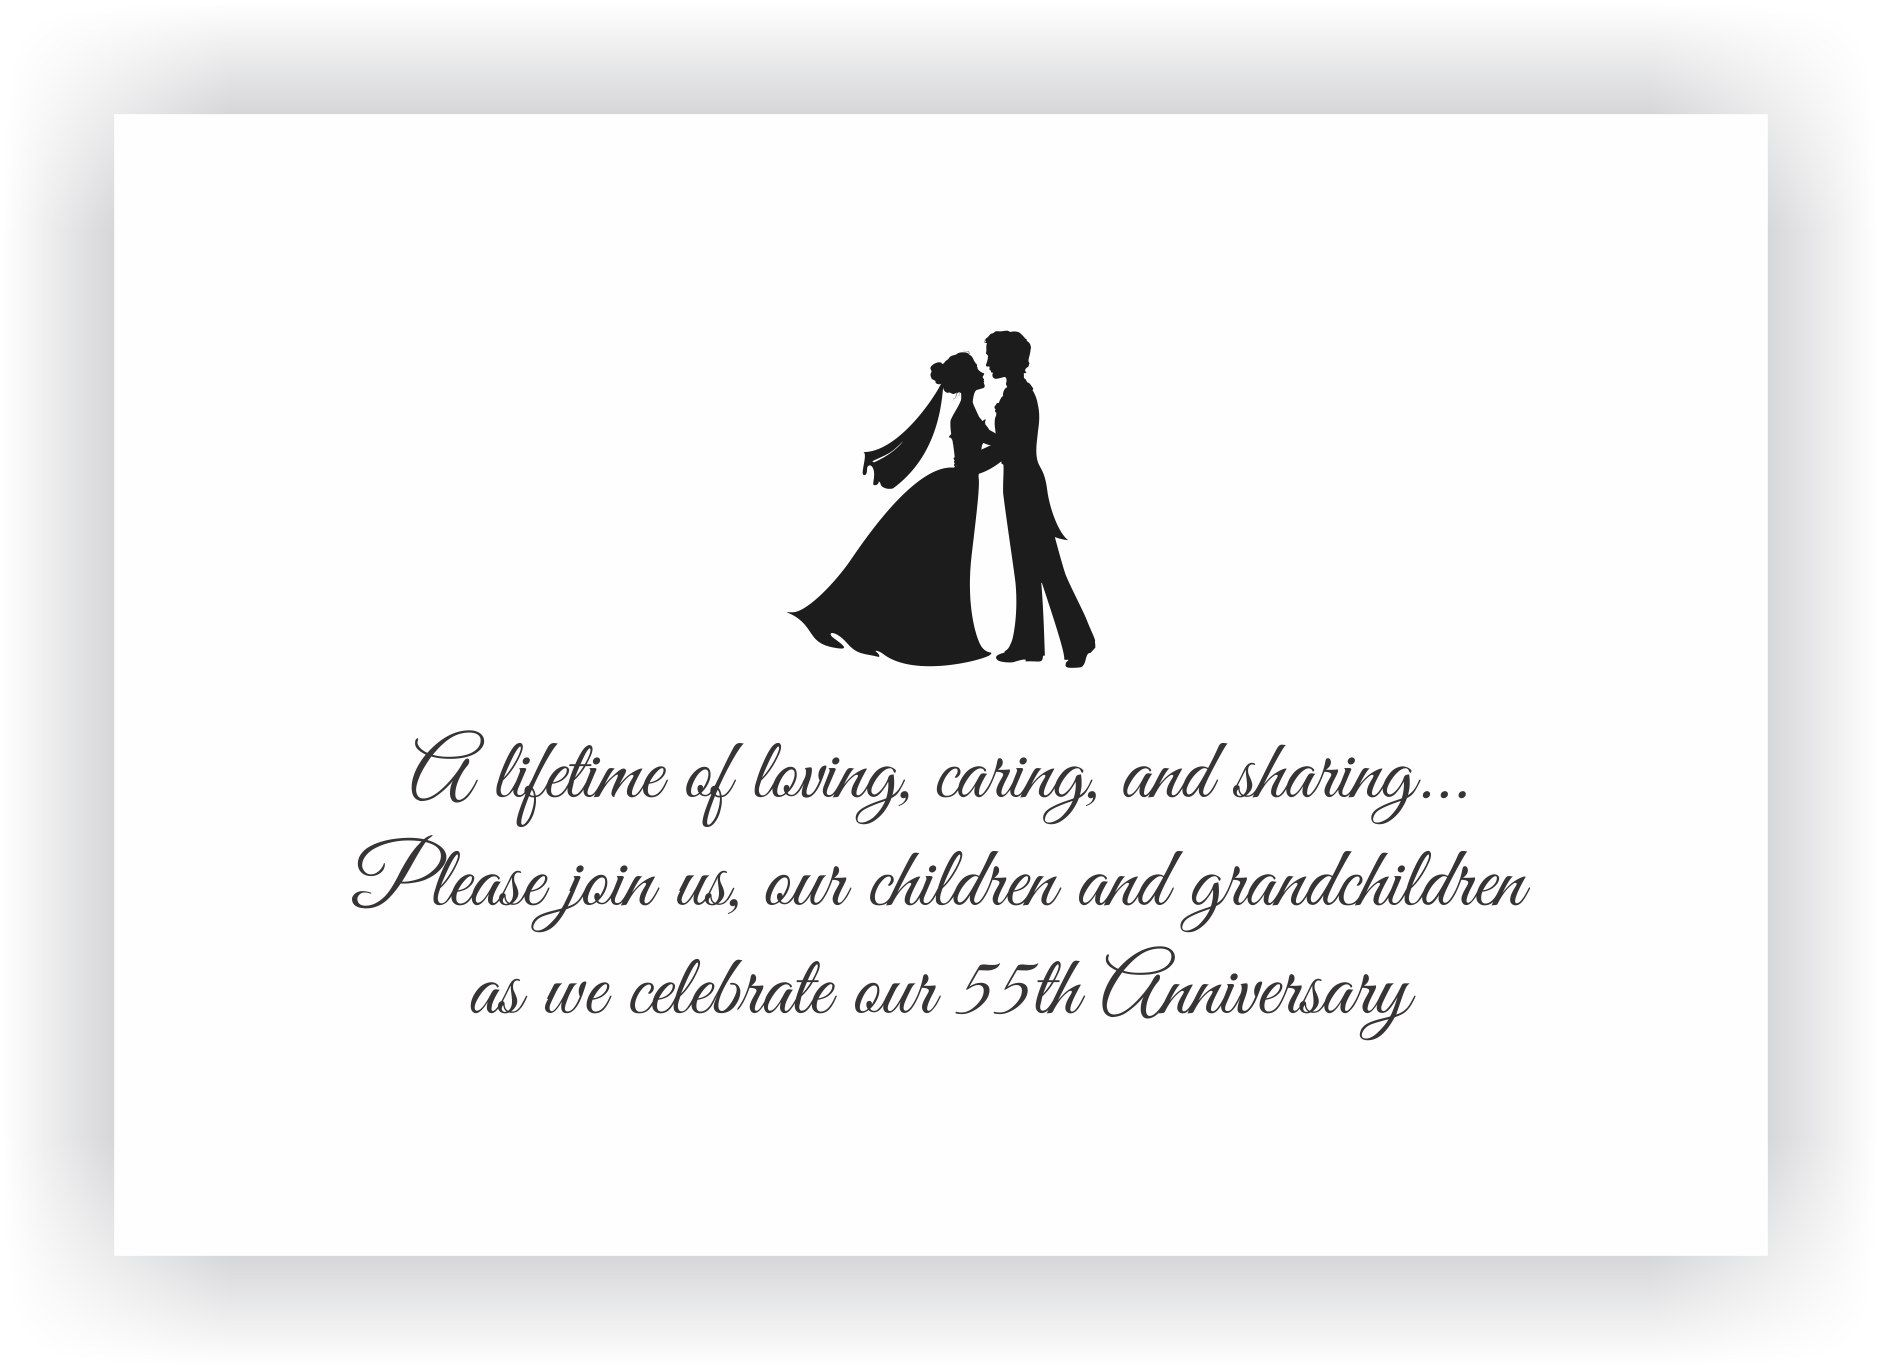 Marriage anniversary invitation messages invitation of wedding marriage anniversary invitation messages invitation of wedding anniversary in delhi chococraft stopboris